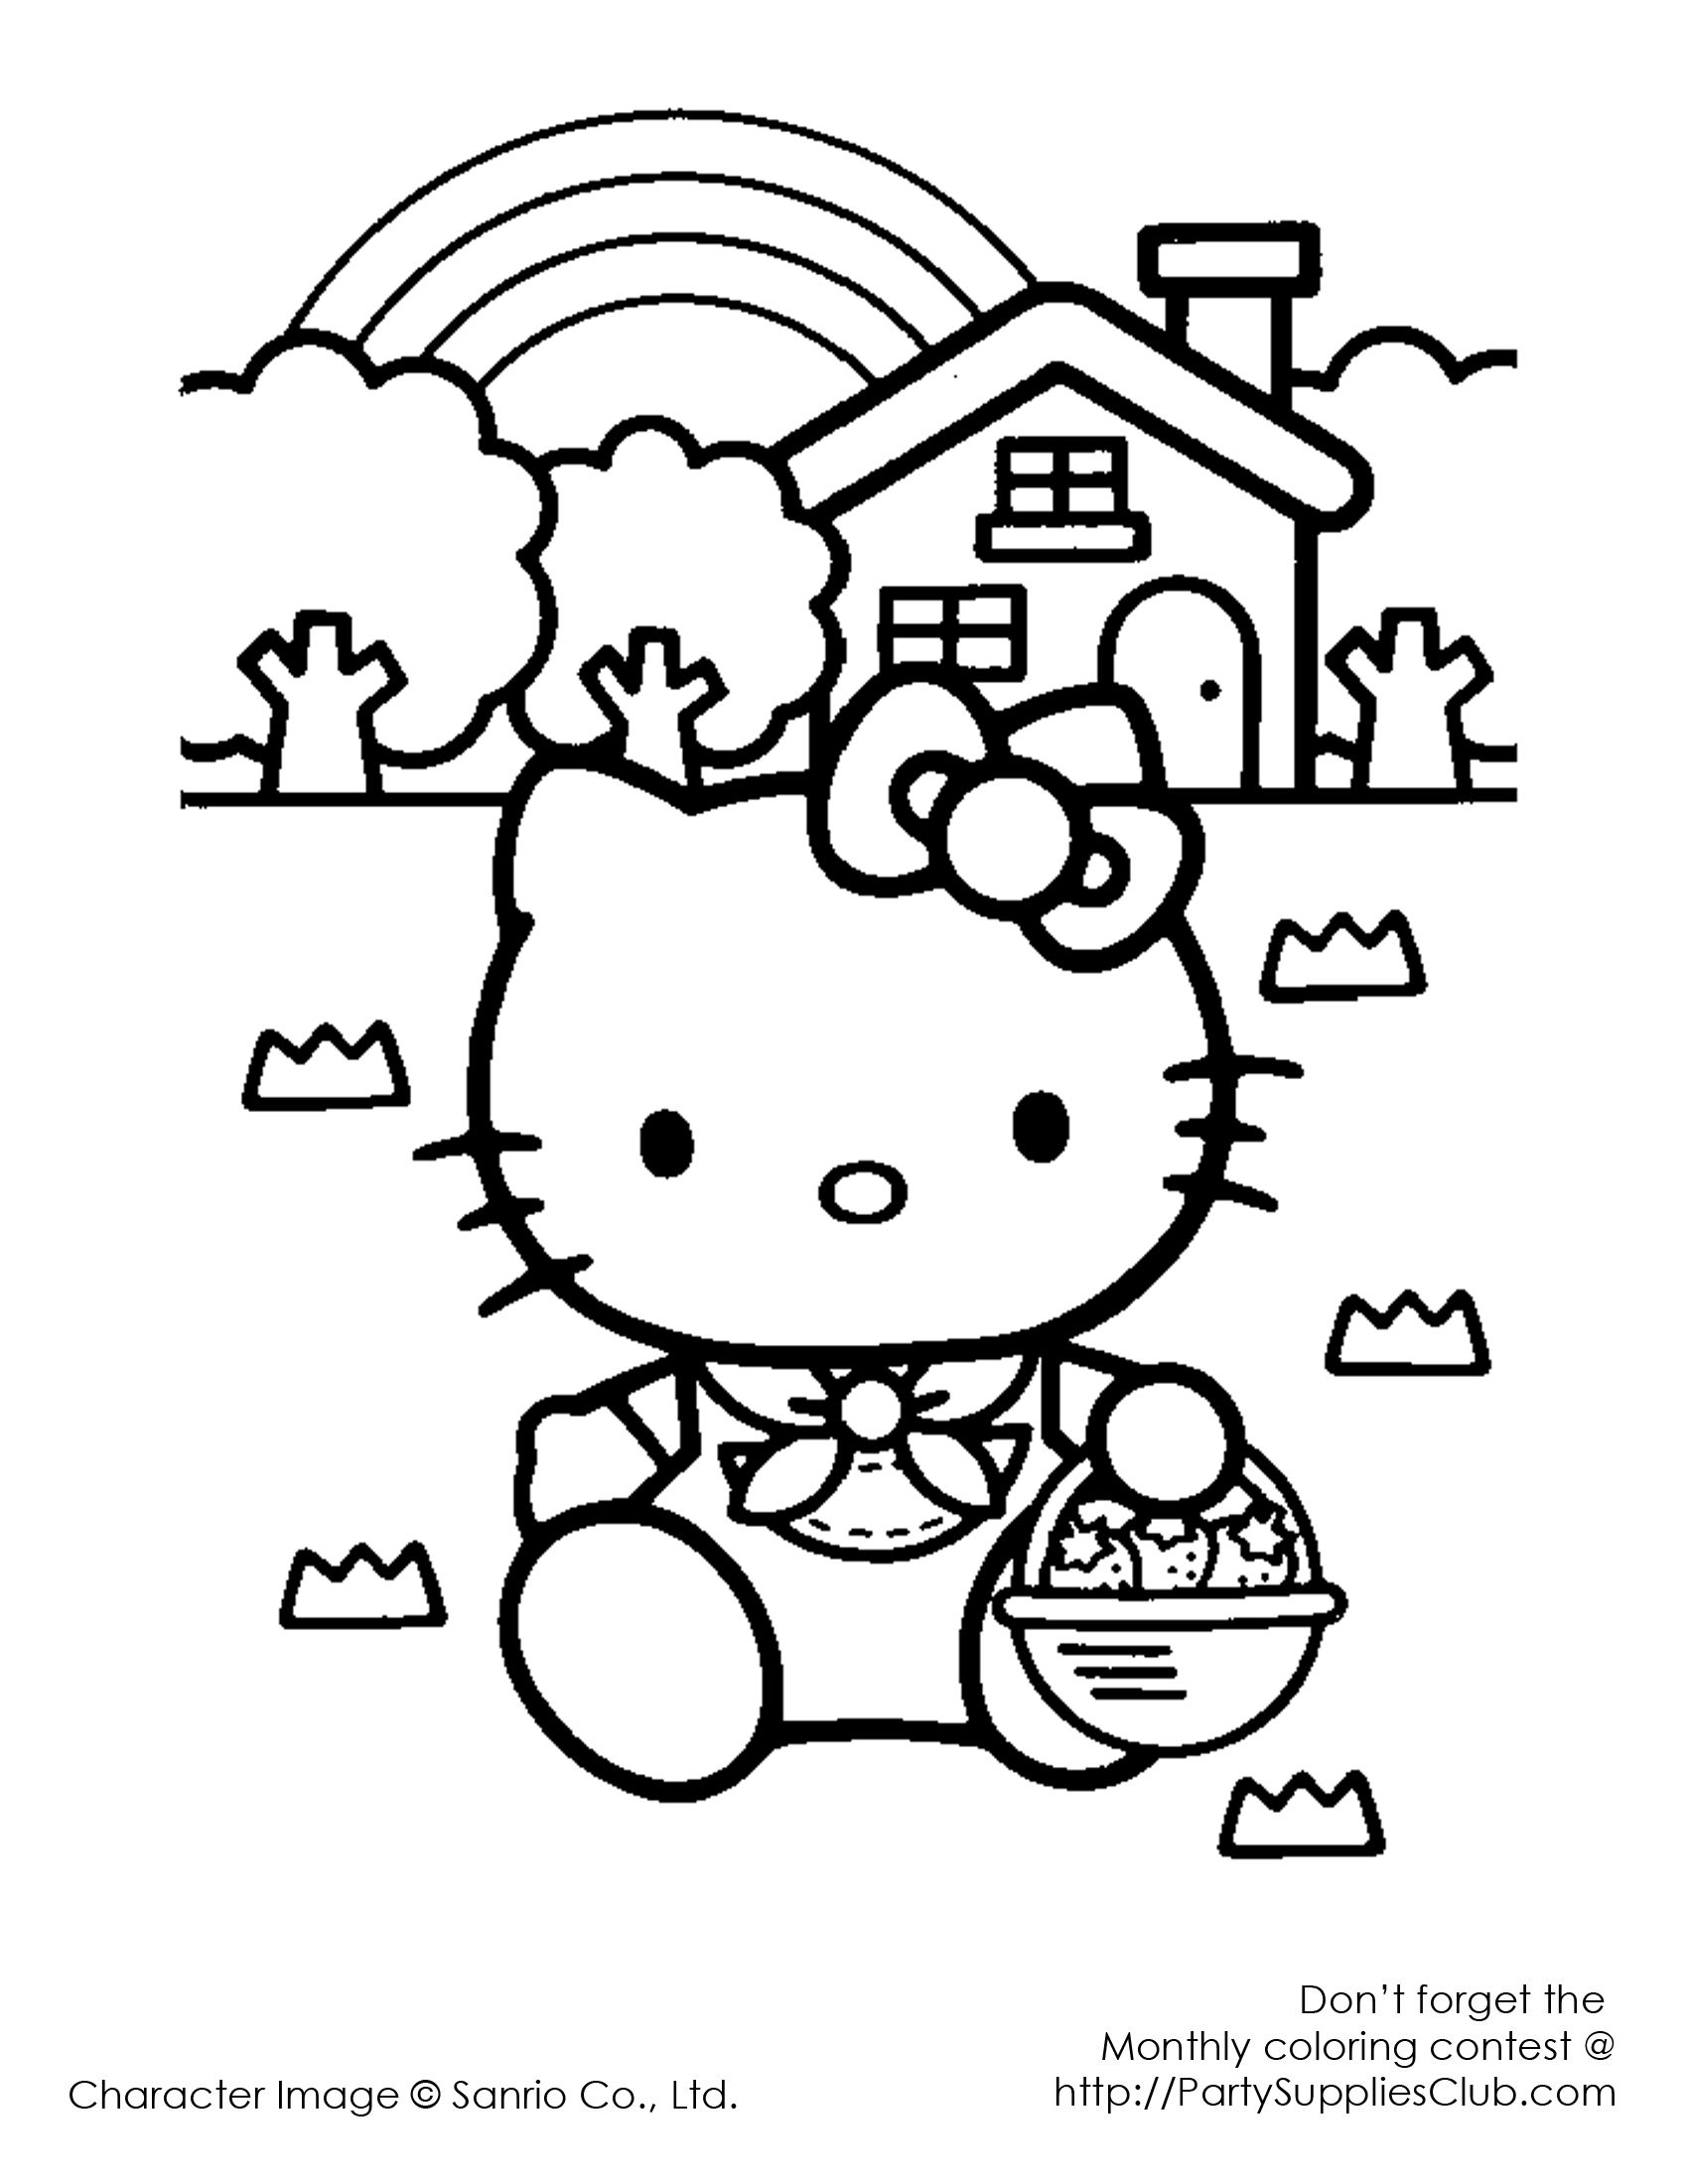 Pin By Darla Wright On Kids Coloring Pages Hello Kitty Coloring Kitty Coloring Hello Kitty Colouring Pages